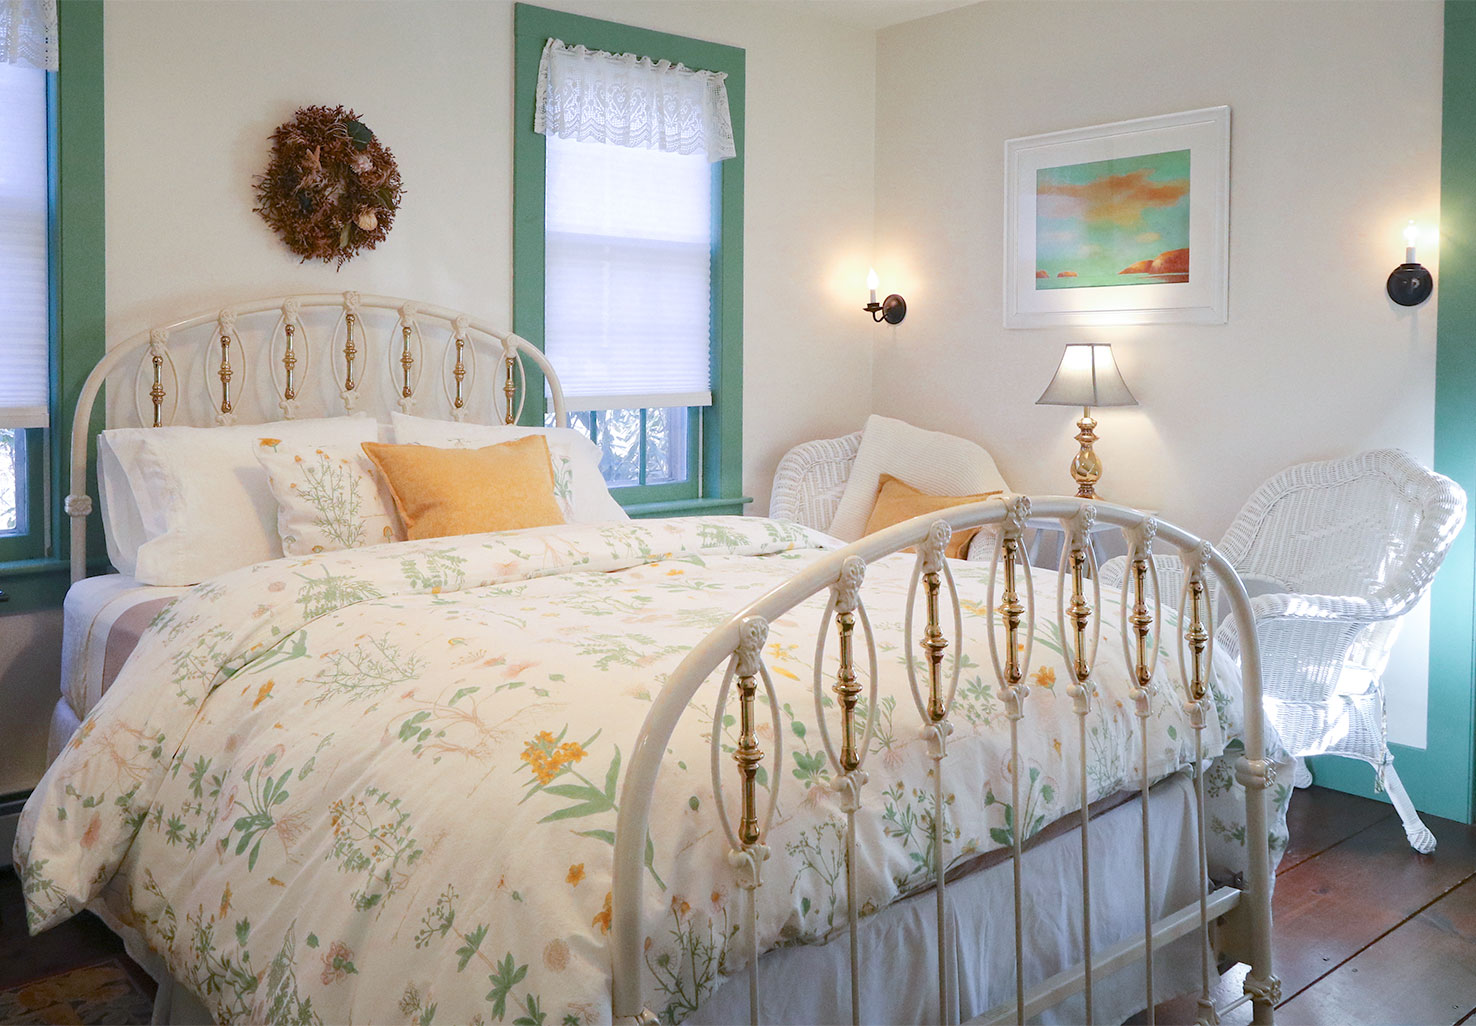 Queen bed in a room with white chairs and a door to a private balcony